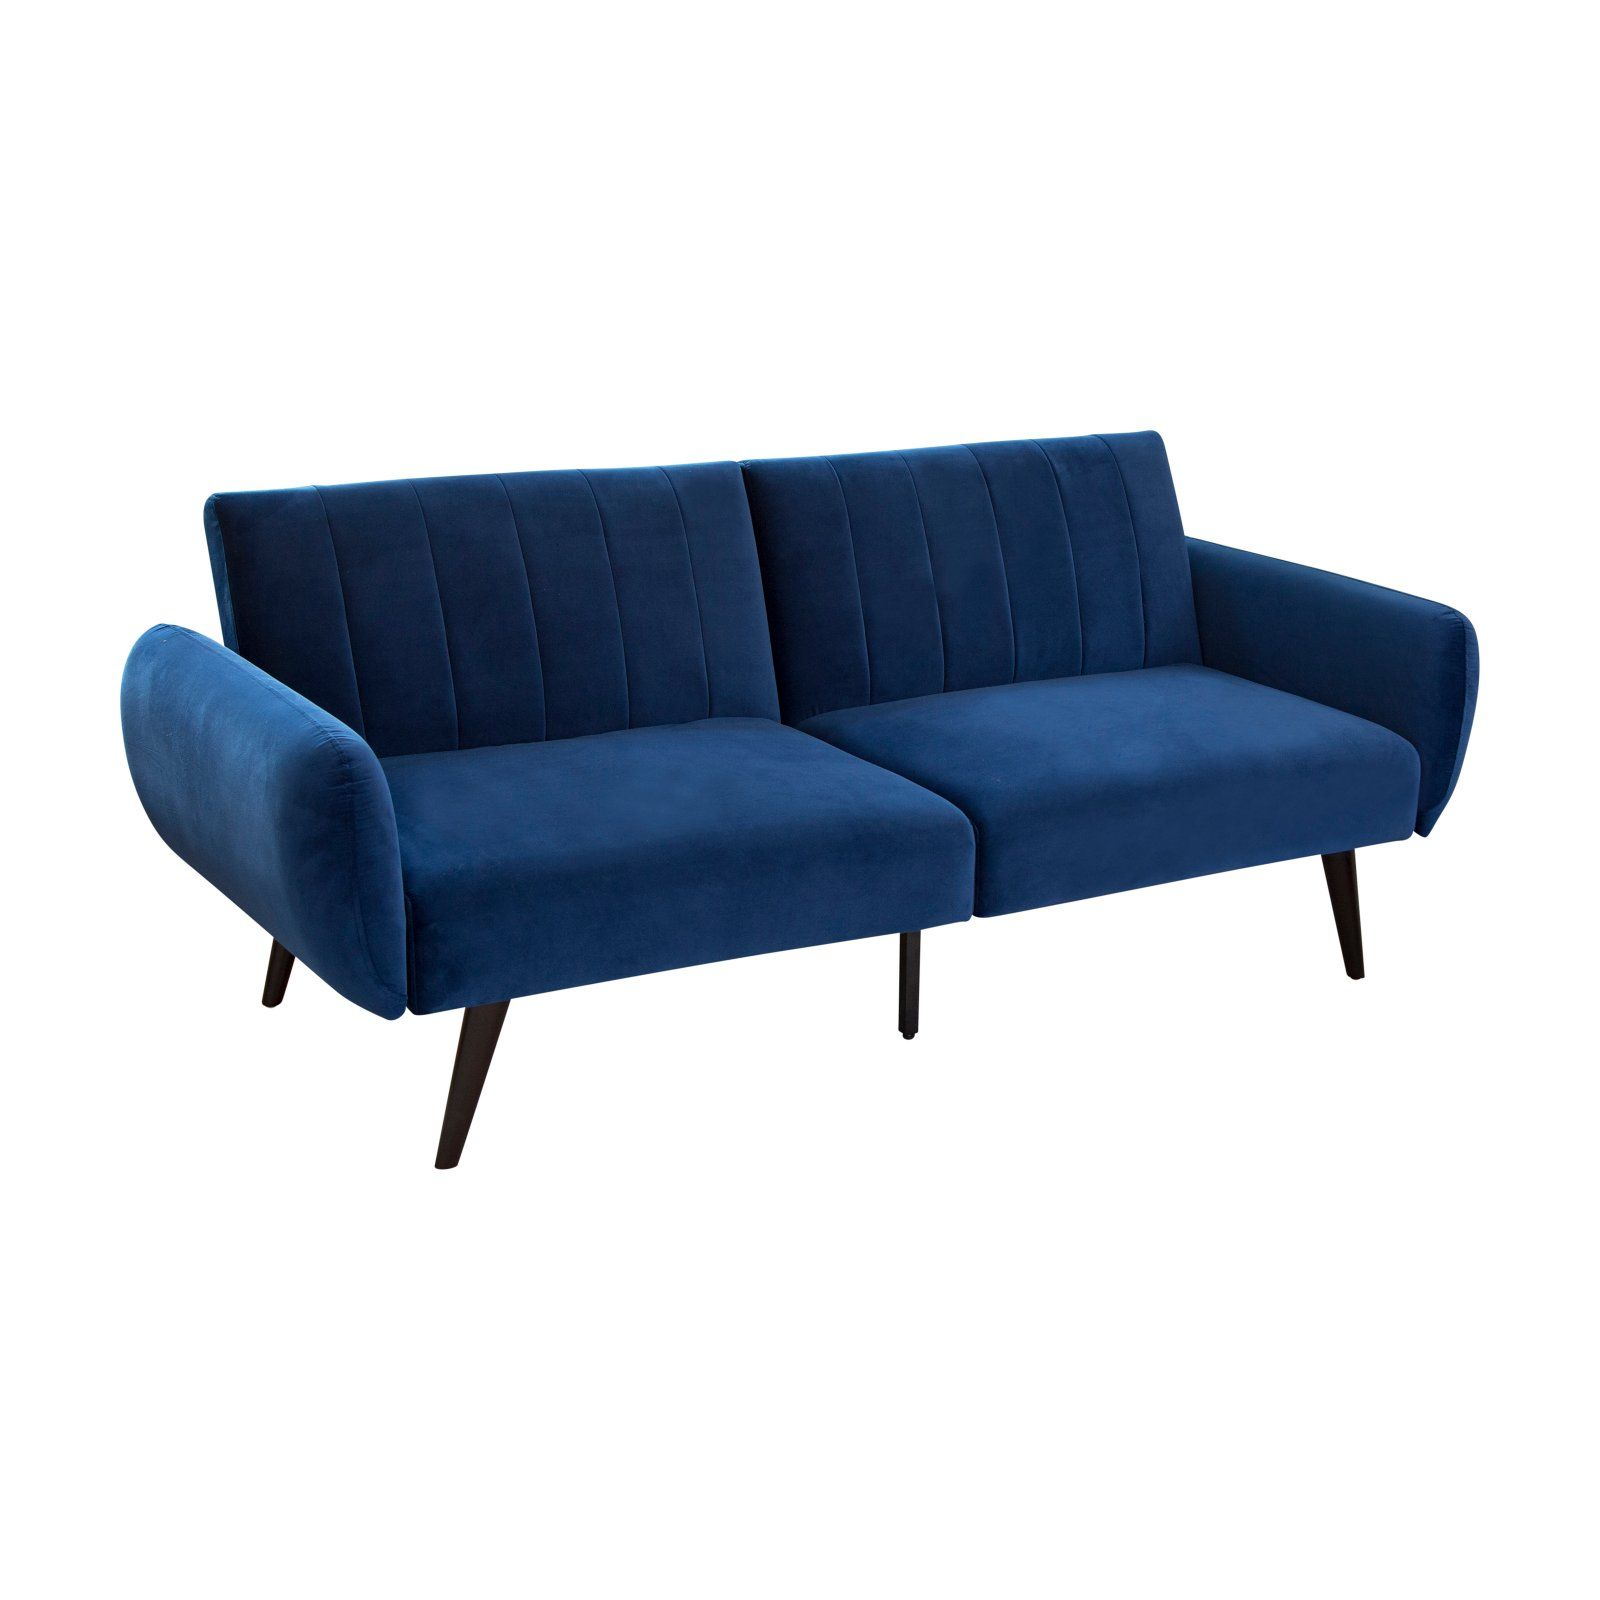 Stupendous Abbyson Living Marvin Foldable Velvet Sofa Blue Products Dailytribune Chair Design For Home Dailytribuneorg